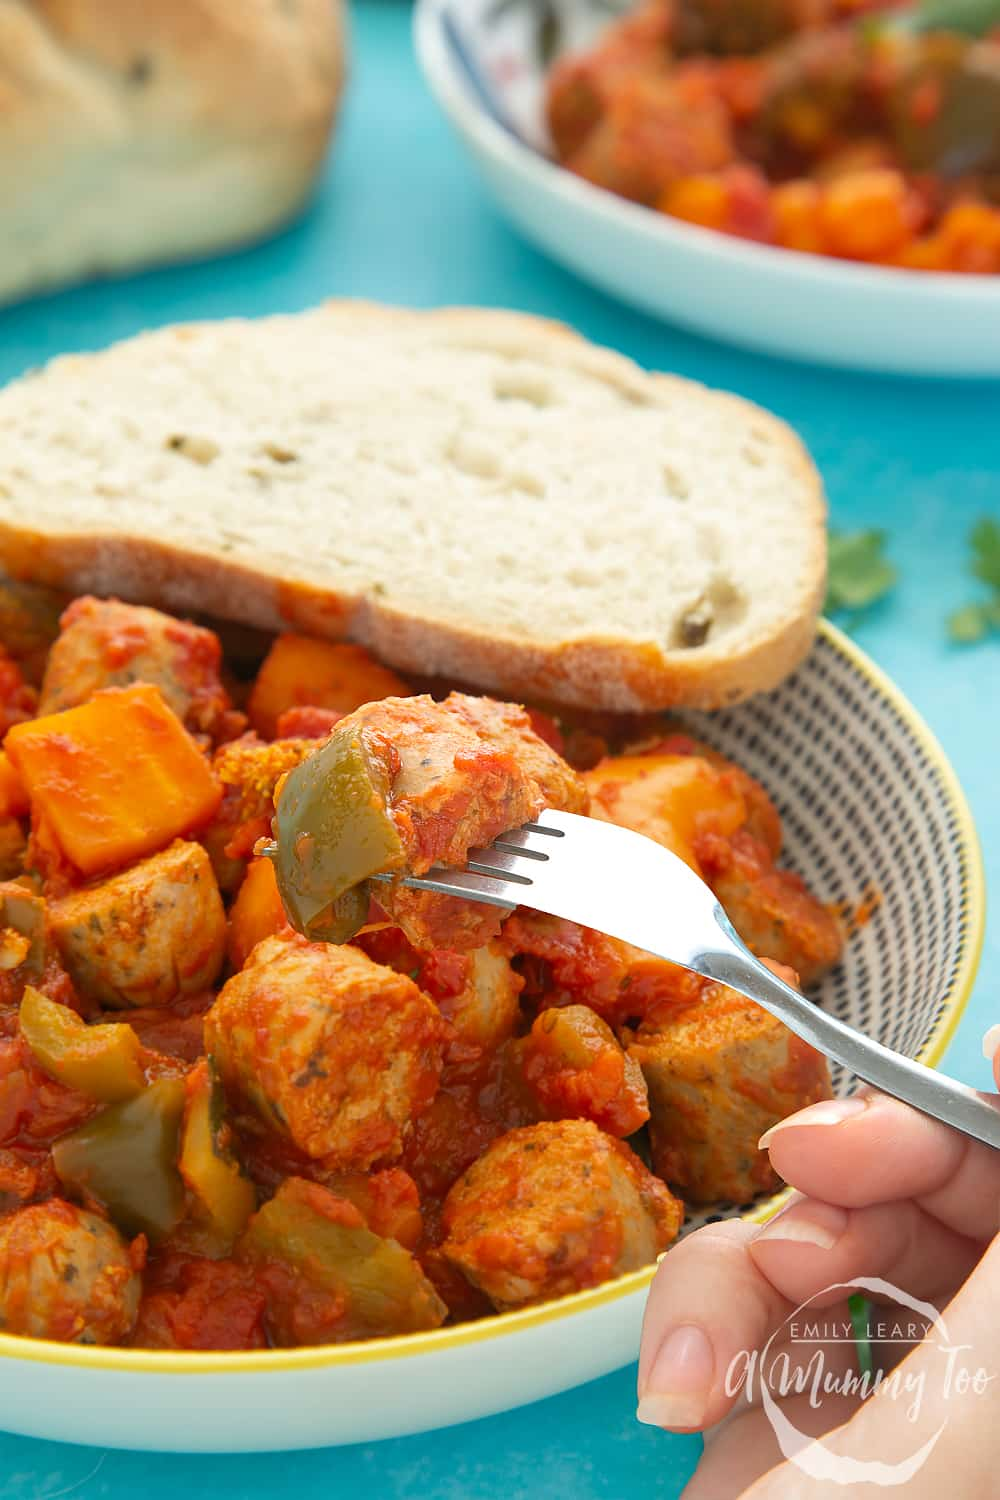 Close shot of the Slow-cooked vegetarian sausage casserole in a bowl with a crusty breadroll on the side.